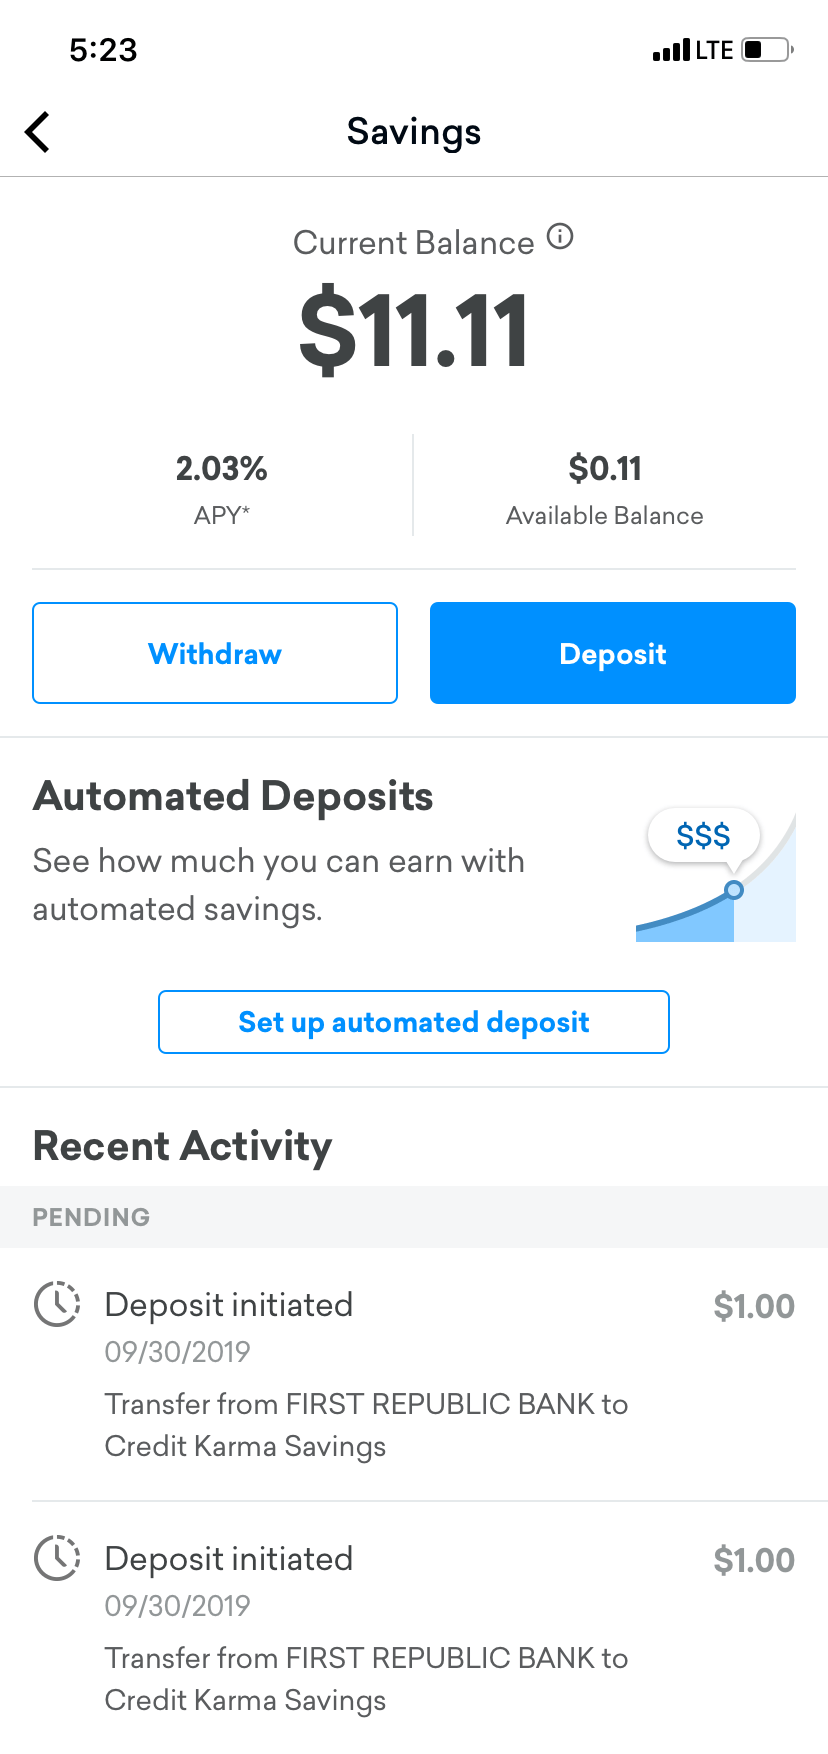 Credit Karma Credit Karma Has High Yield Savings Earning Over 20x The Average